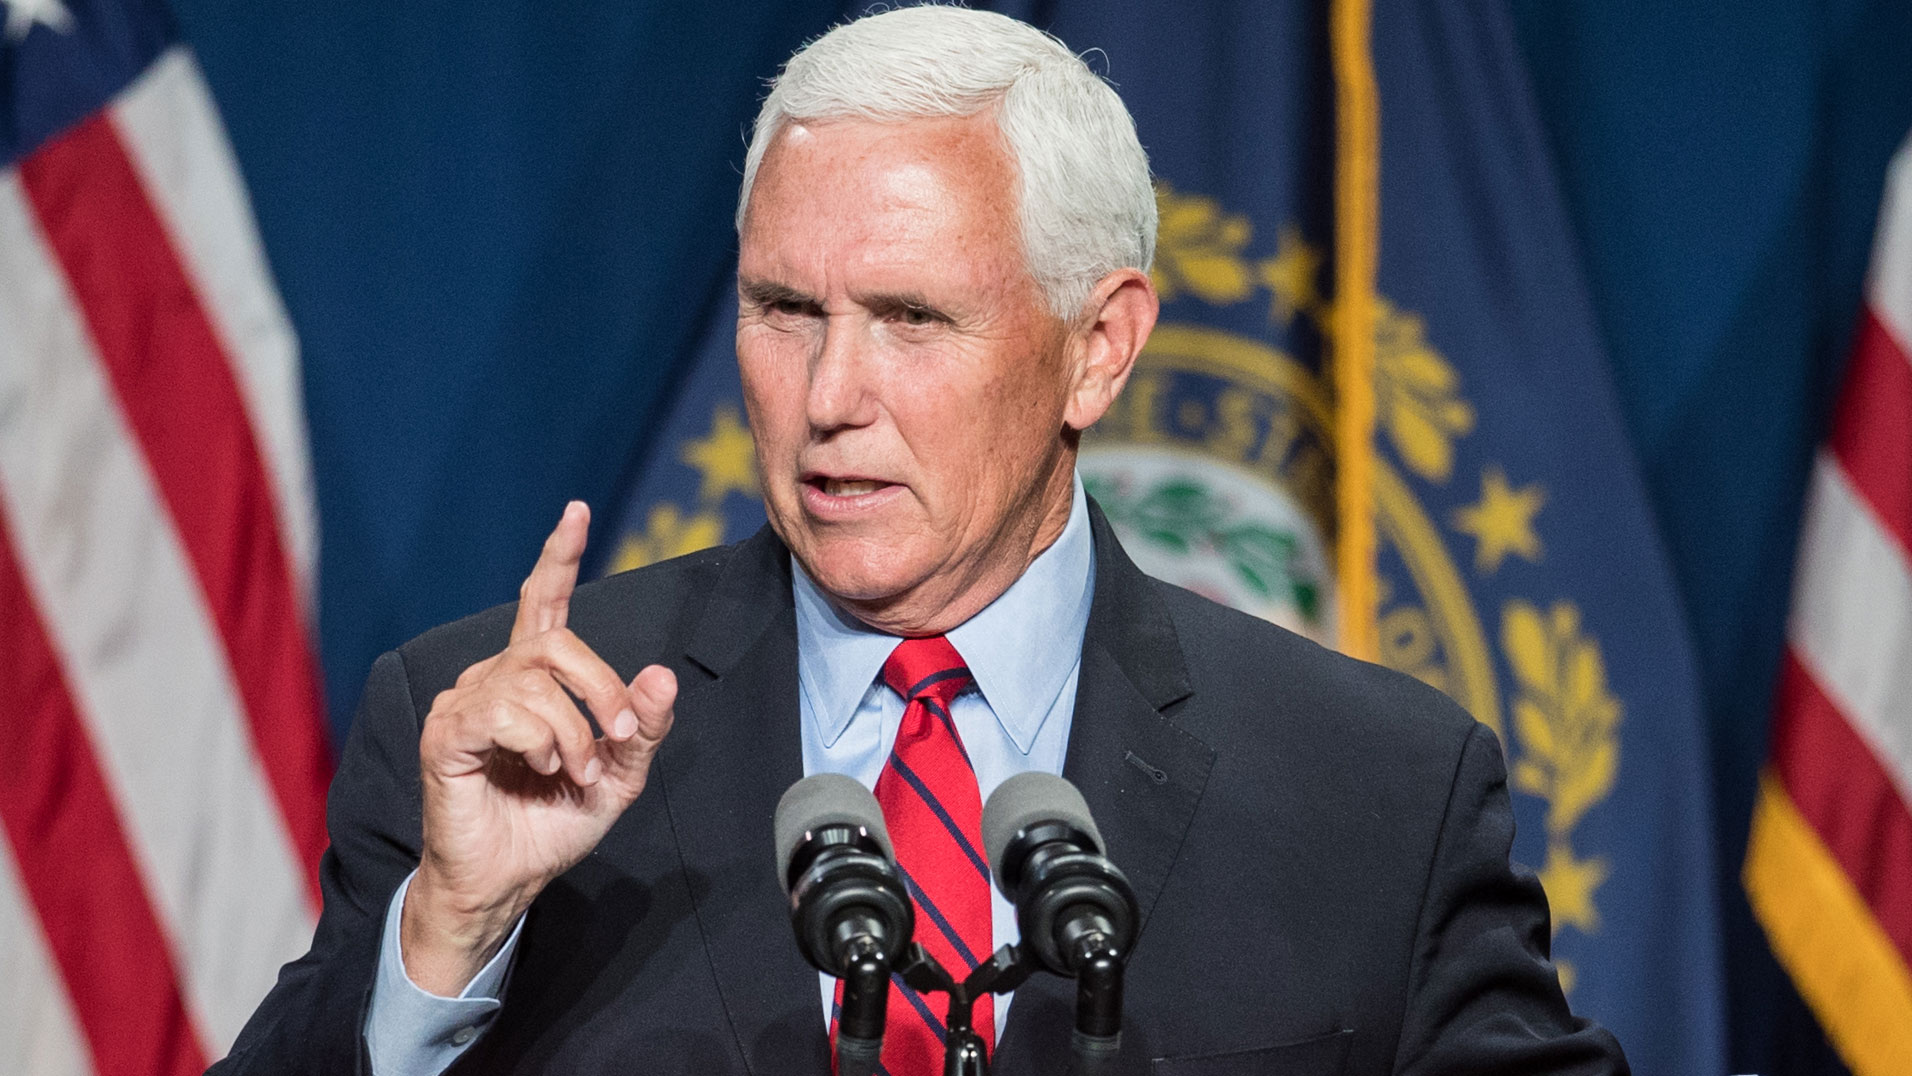 Pence faces hecklers shouting 'traitor' at religious conservative conference